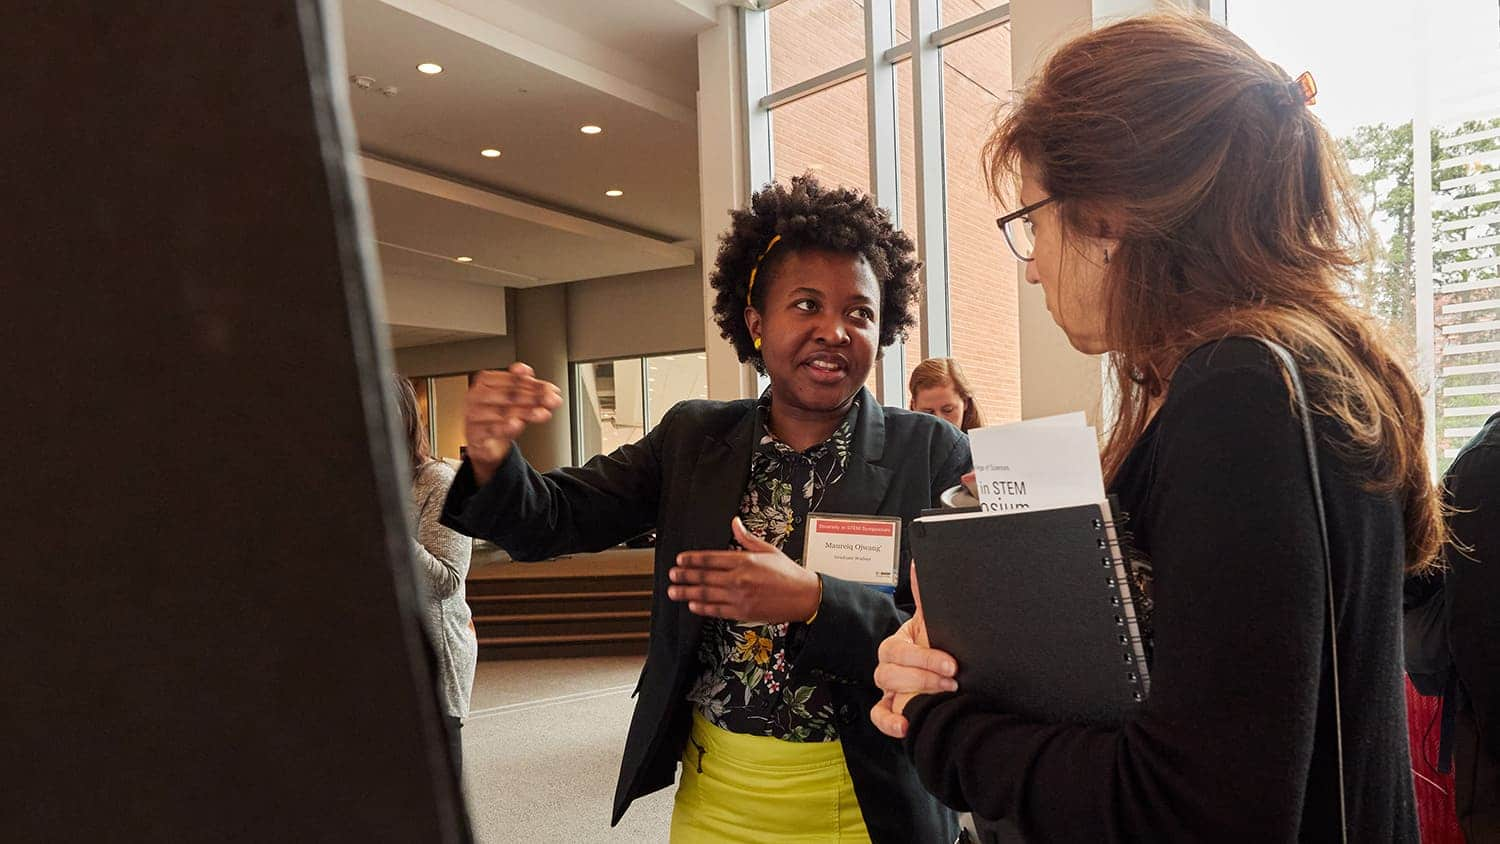 Ph.D. student Maureiq Ojwang' explains her research poster to an attendee.